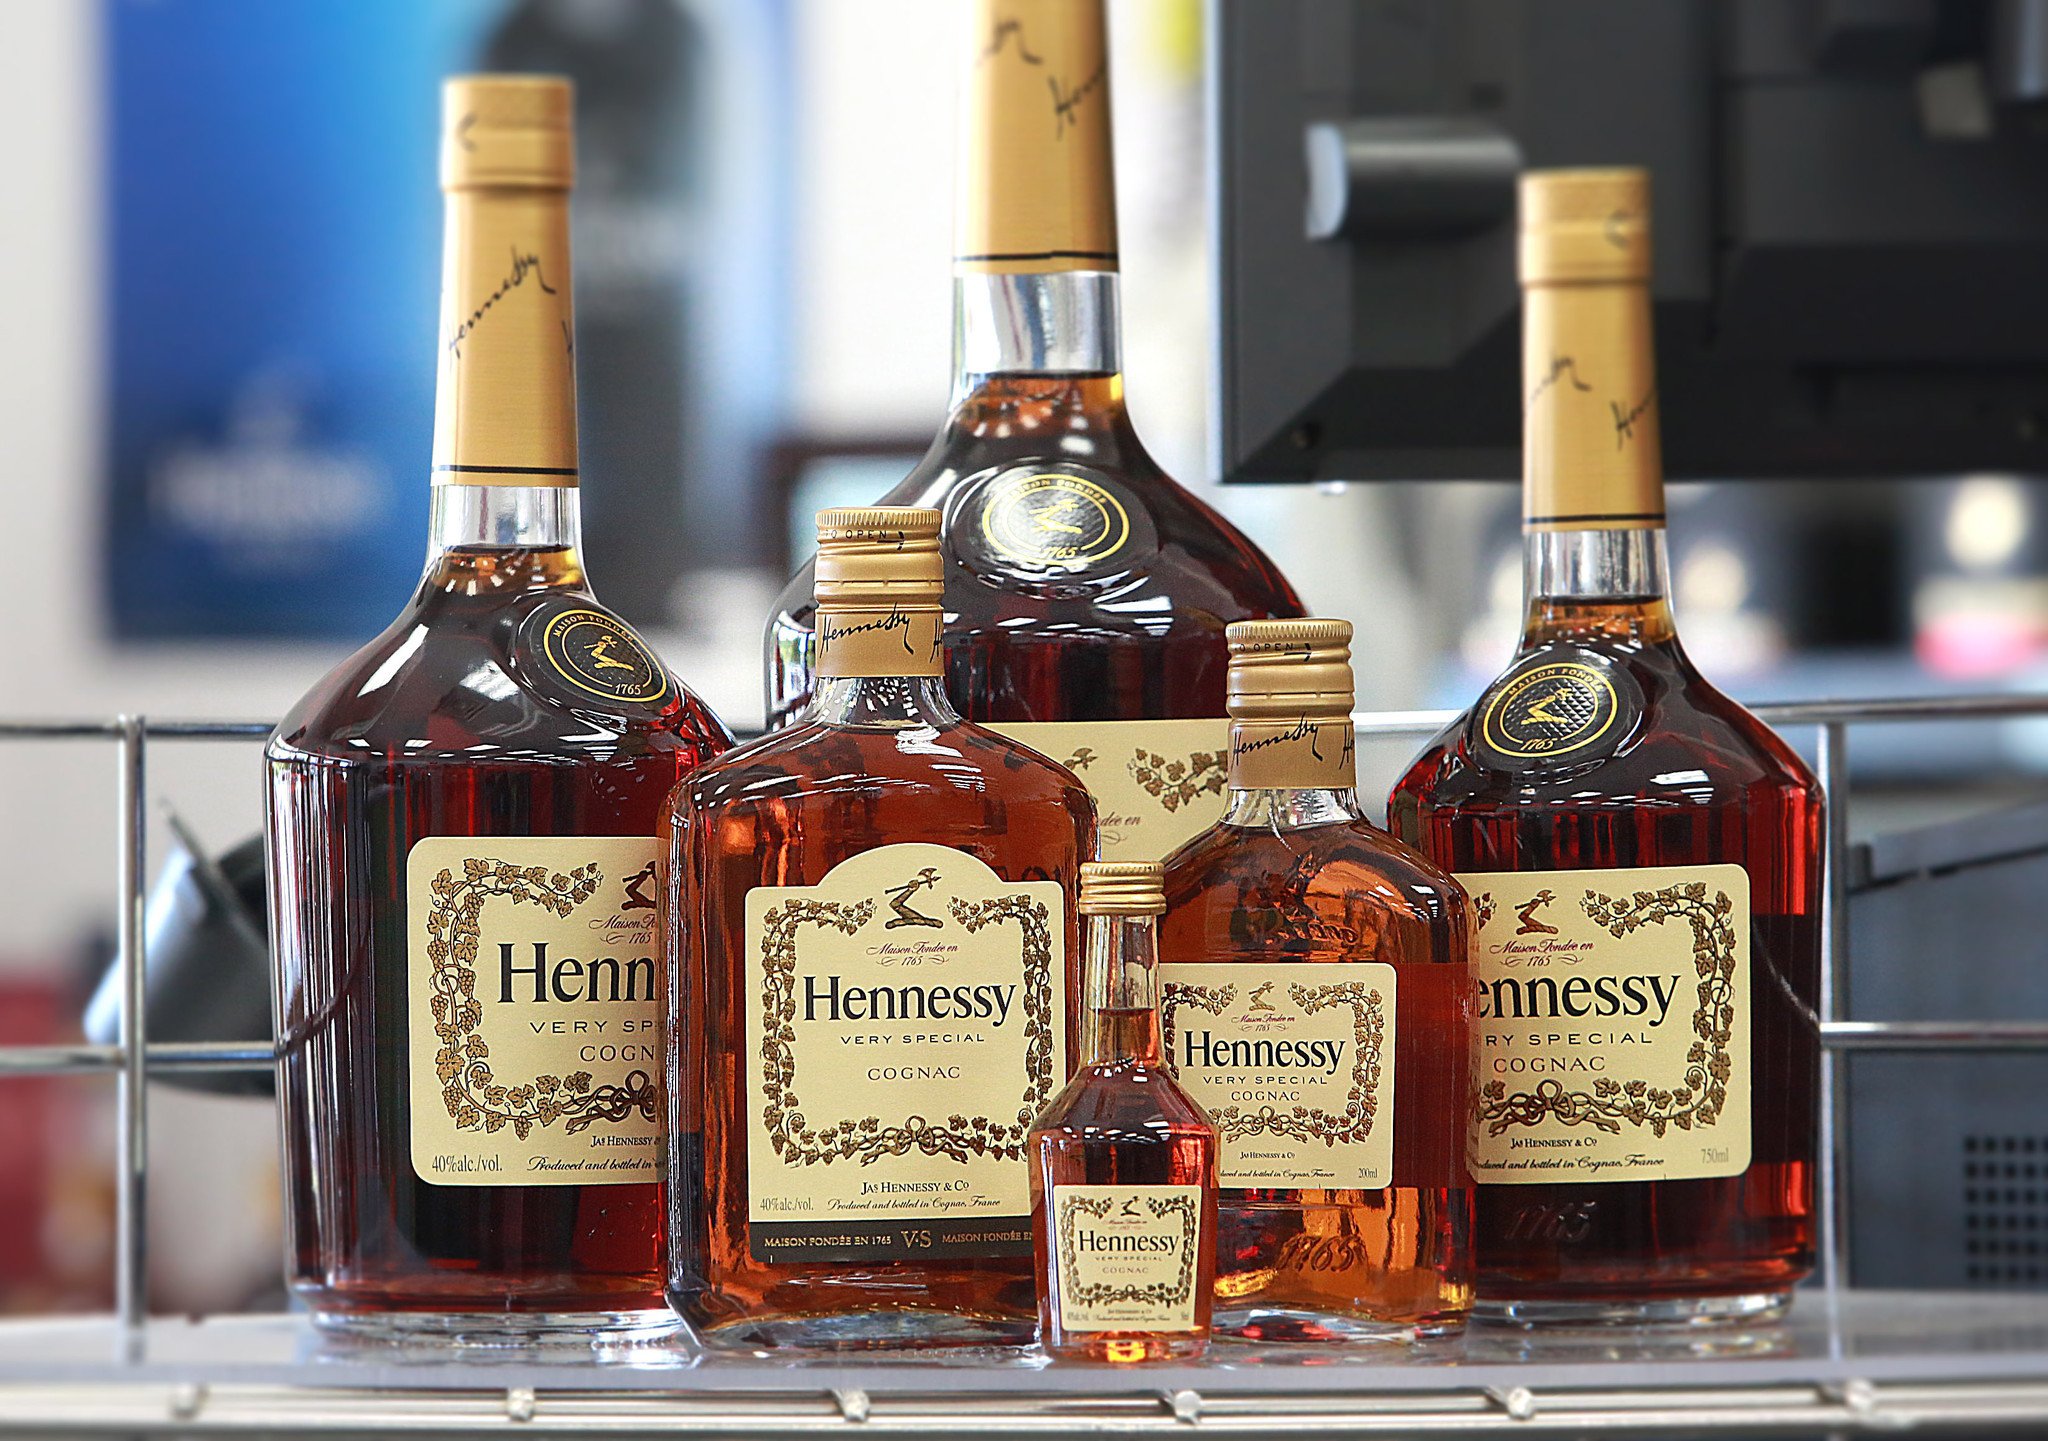 top 10 best selling liquor brands at abc stores in hampton roads